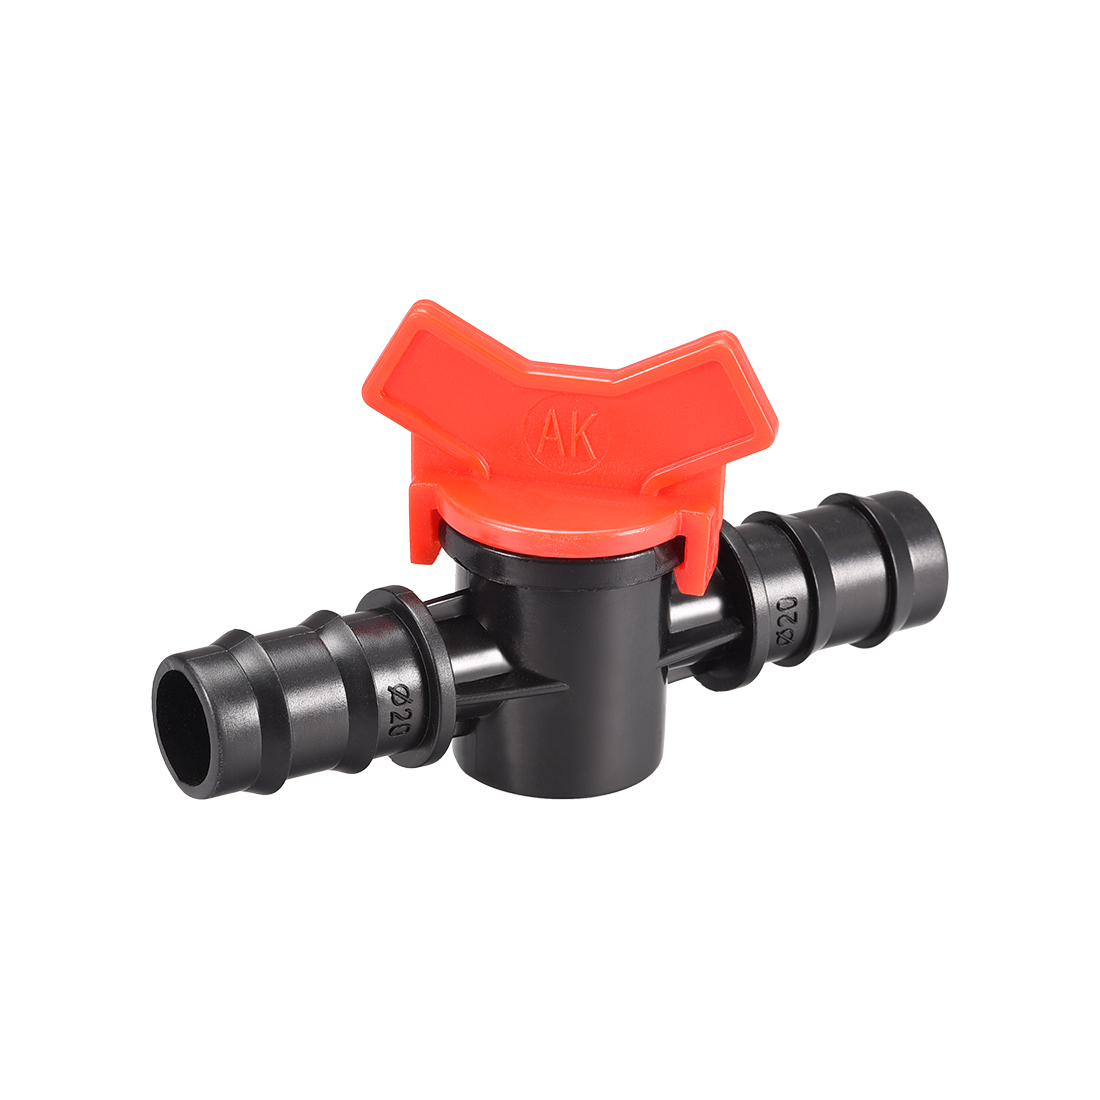 Drip Irrigation Barbed Valve for 5/8 Inch Double Male Barbed Valve